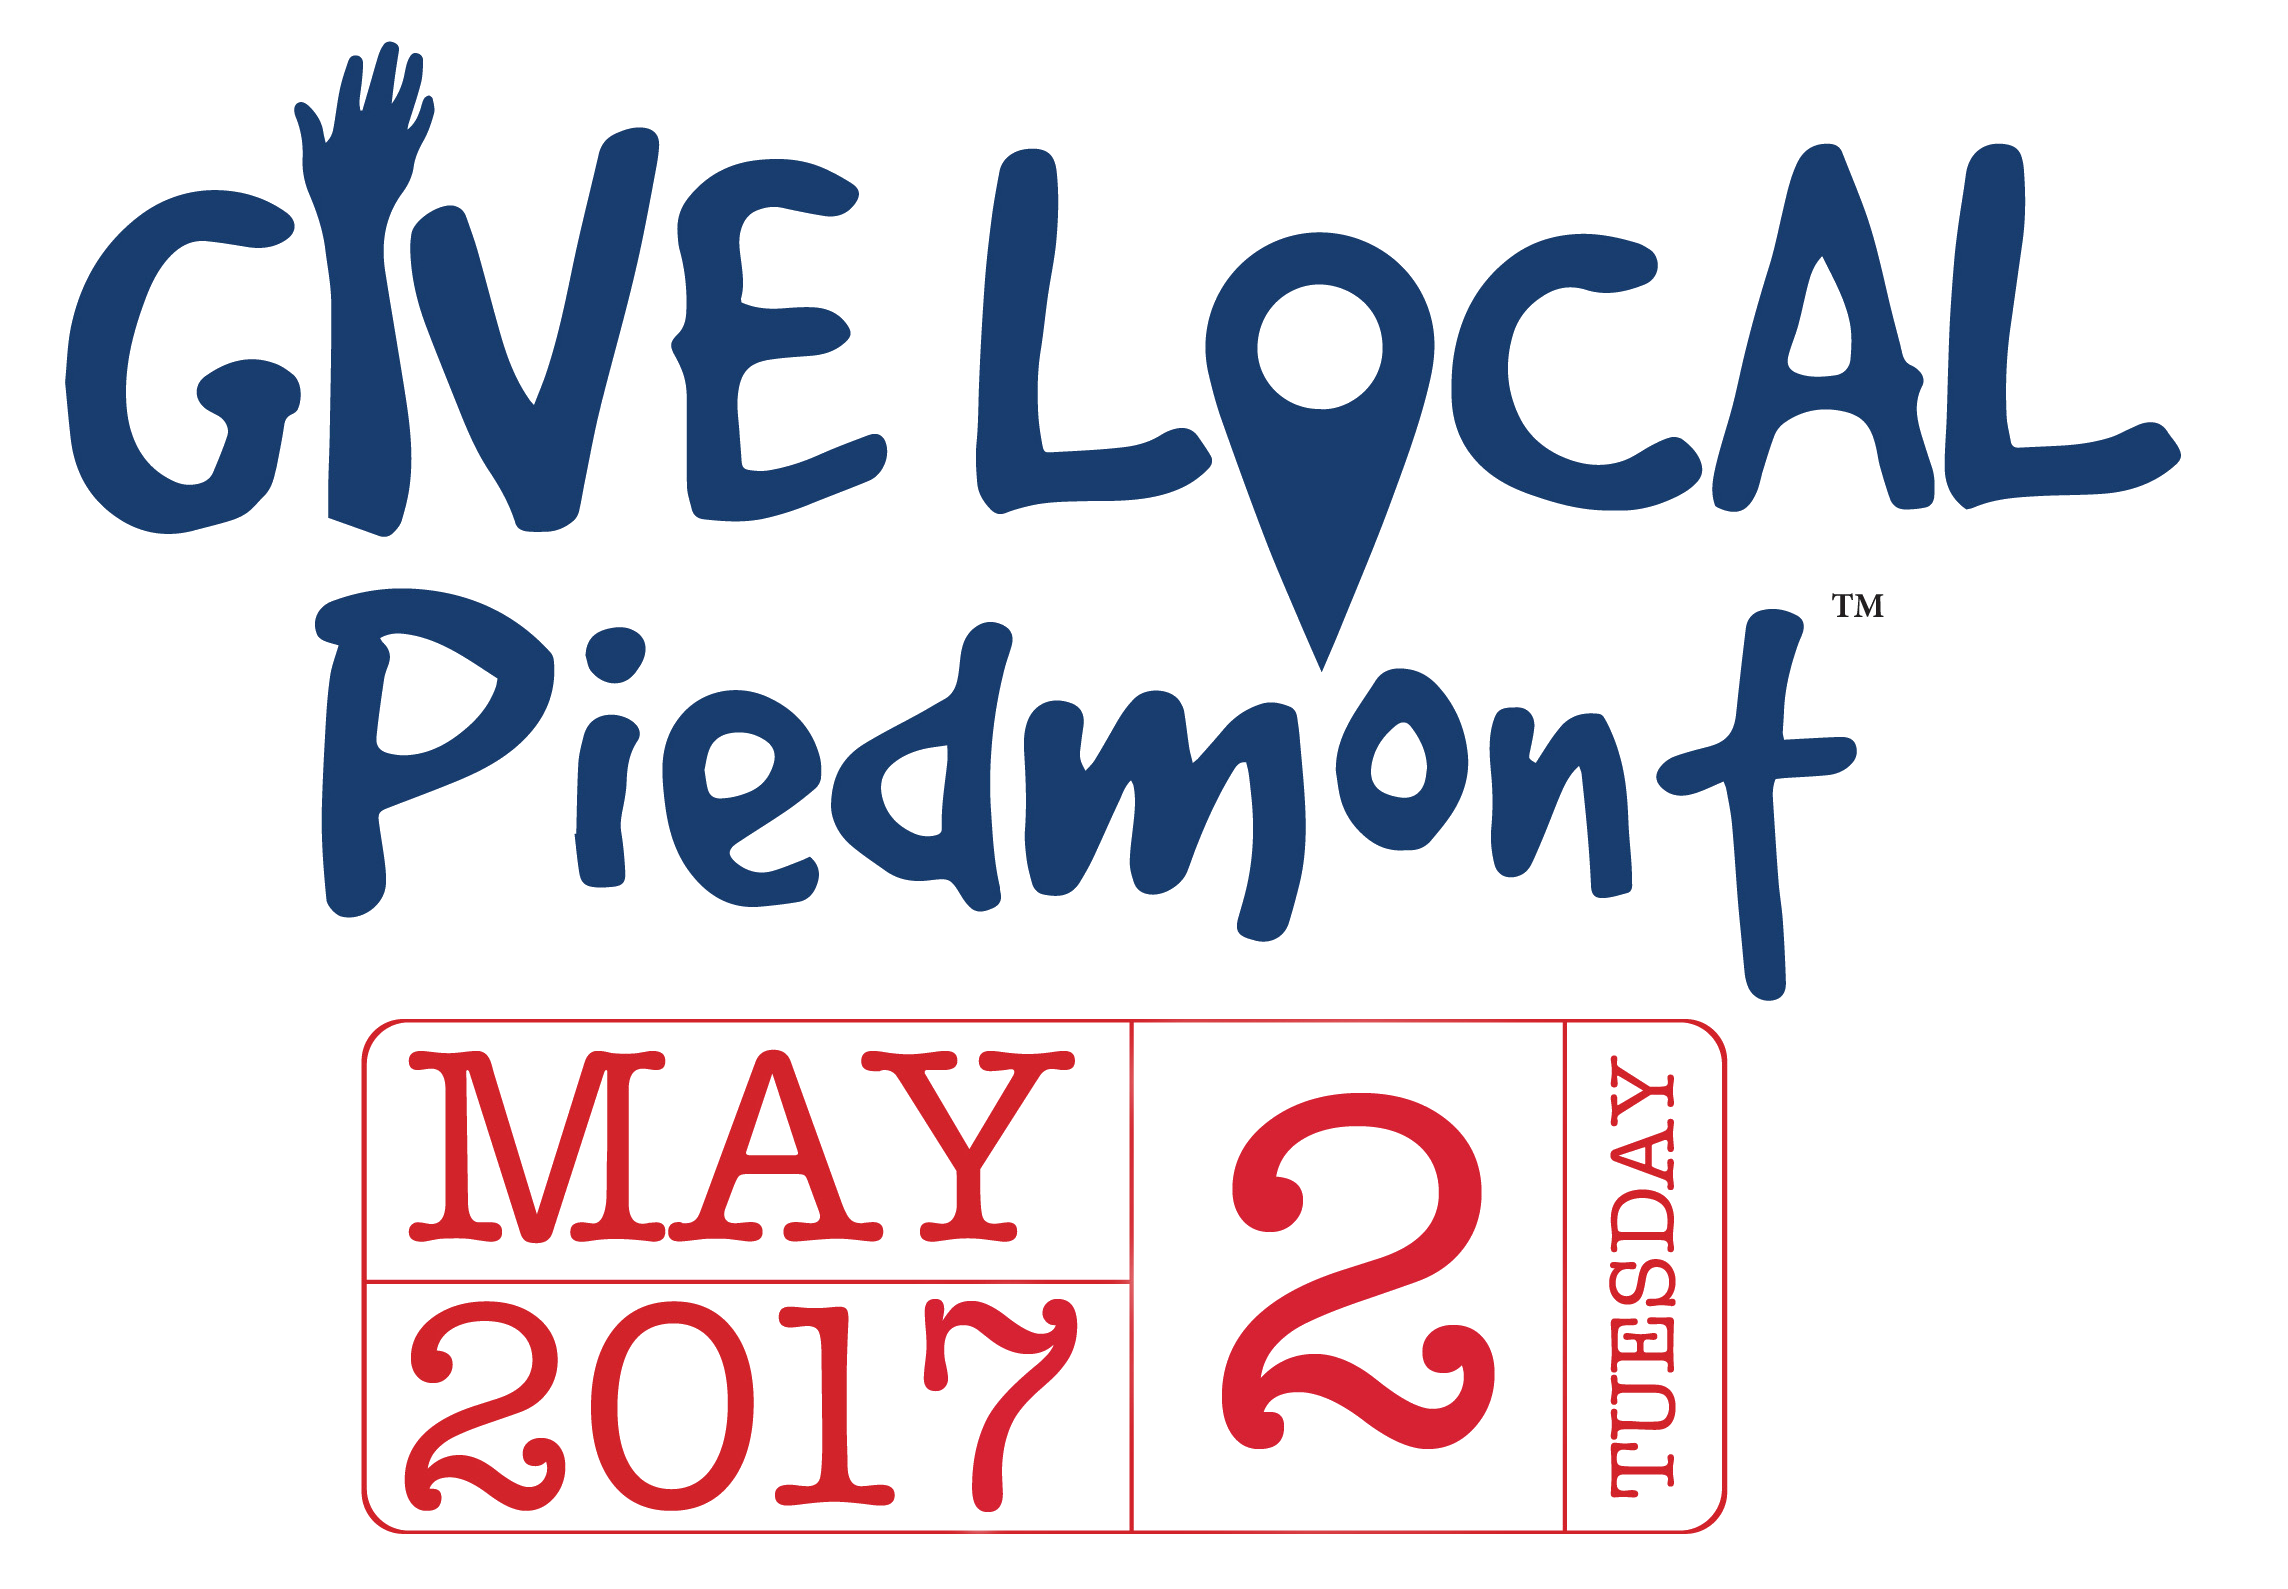 Give Local Piedmont 2017